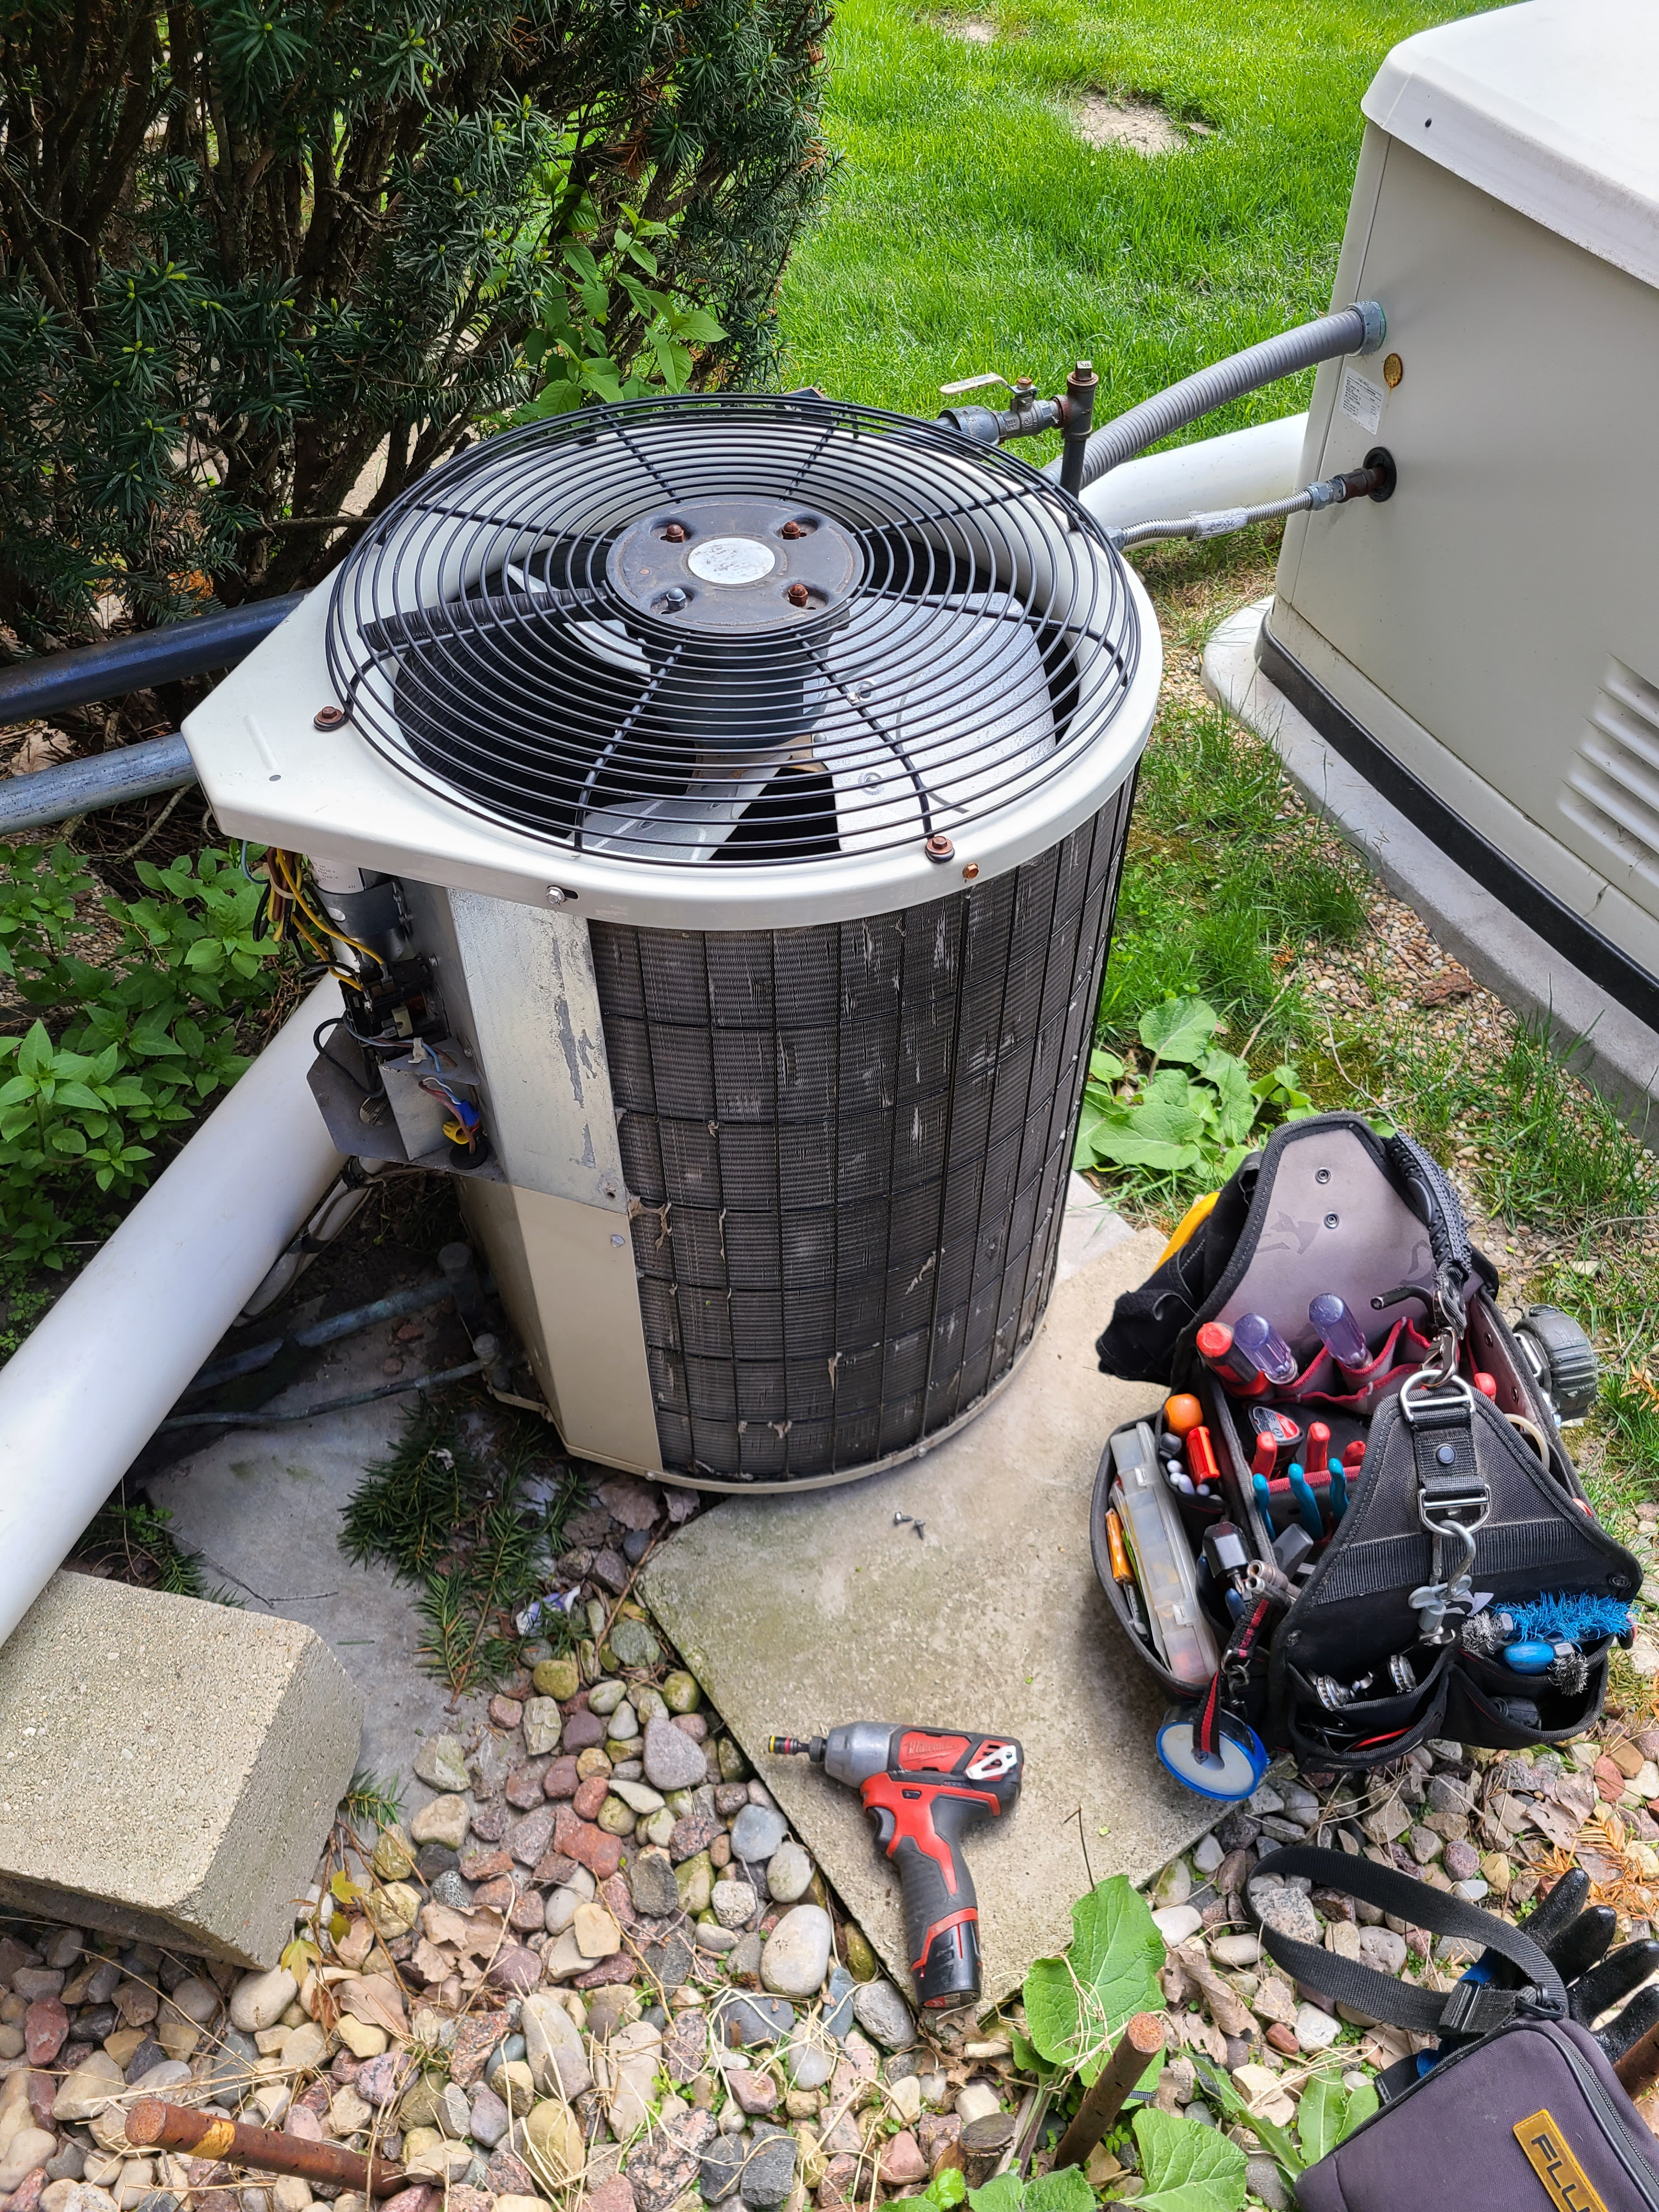 Payne air conditioning system cleaned and checked, ready for spring.